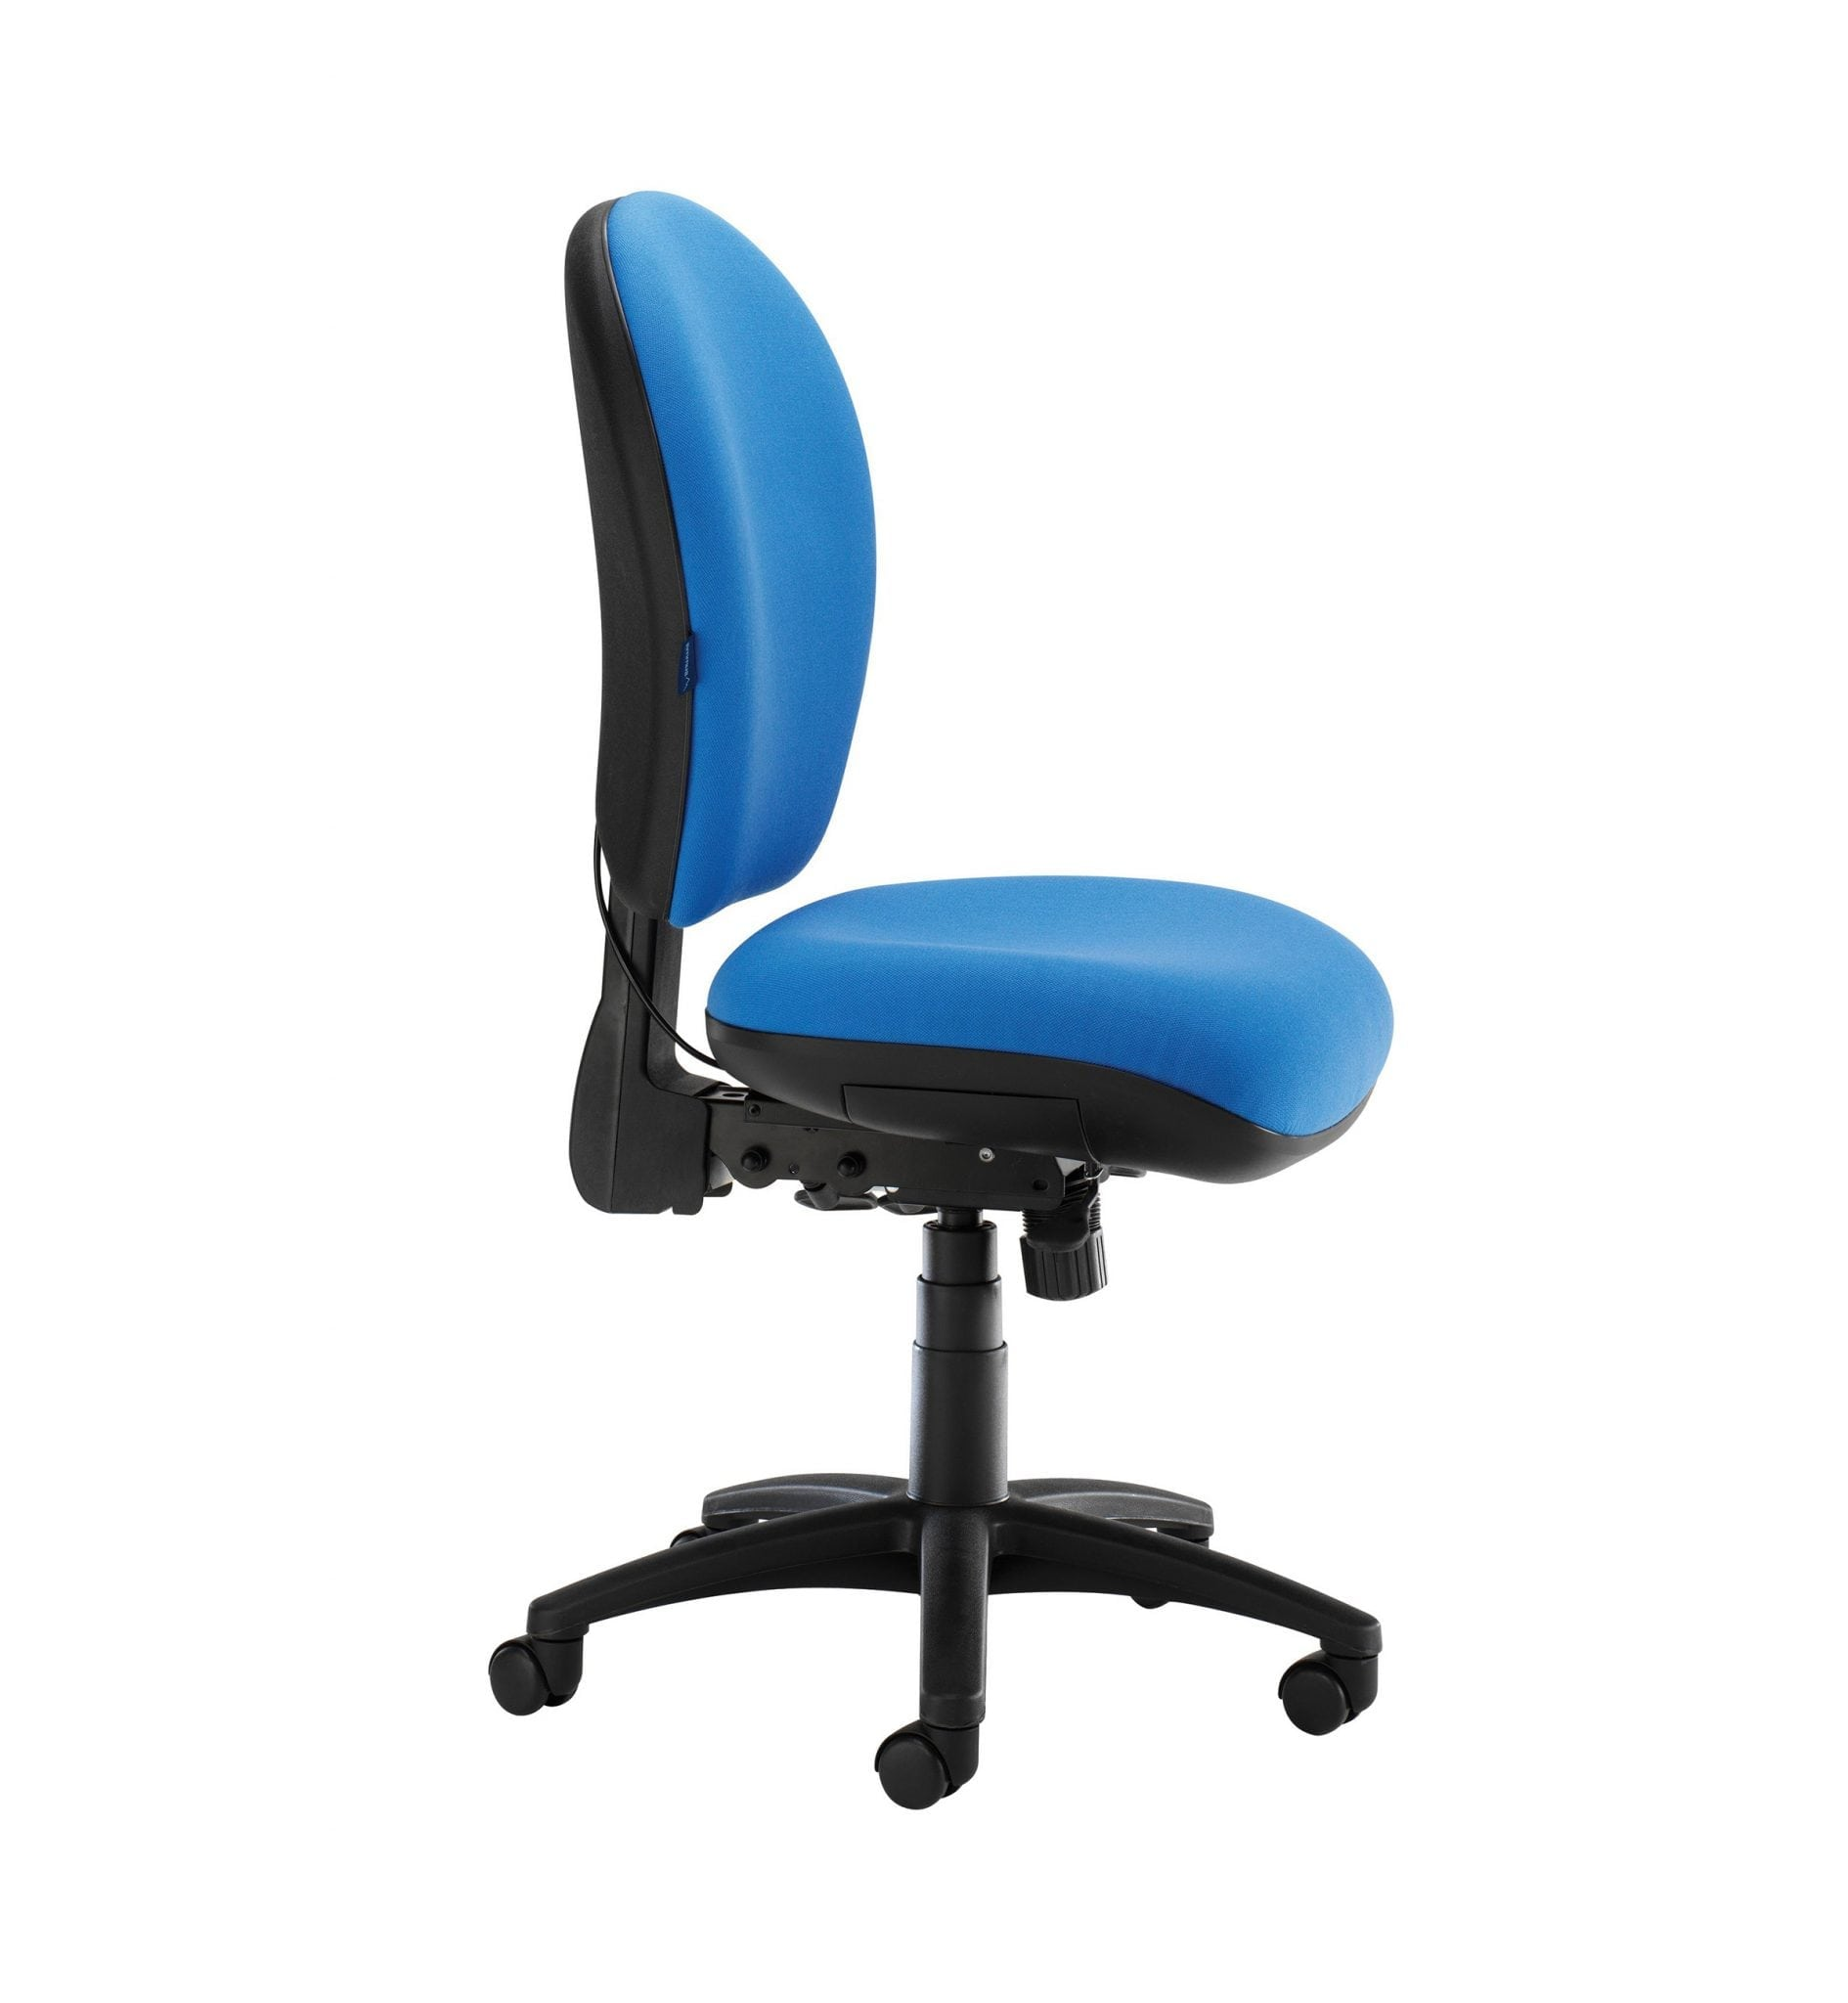 BL21 – Blenheim Range - Blenheim classic task office chair with advanced operator plus functionality – from Summit Chairs